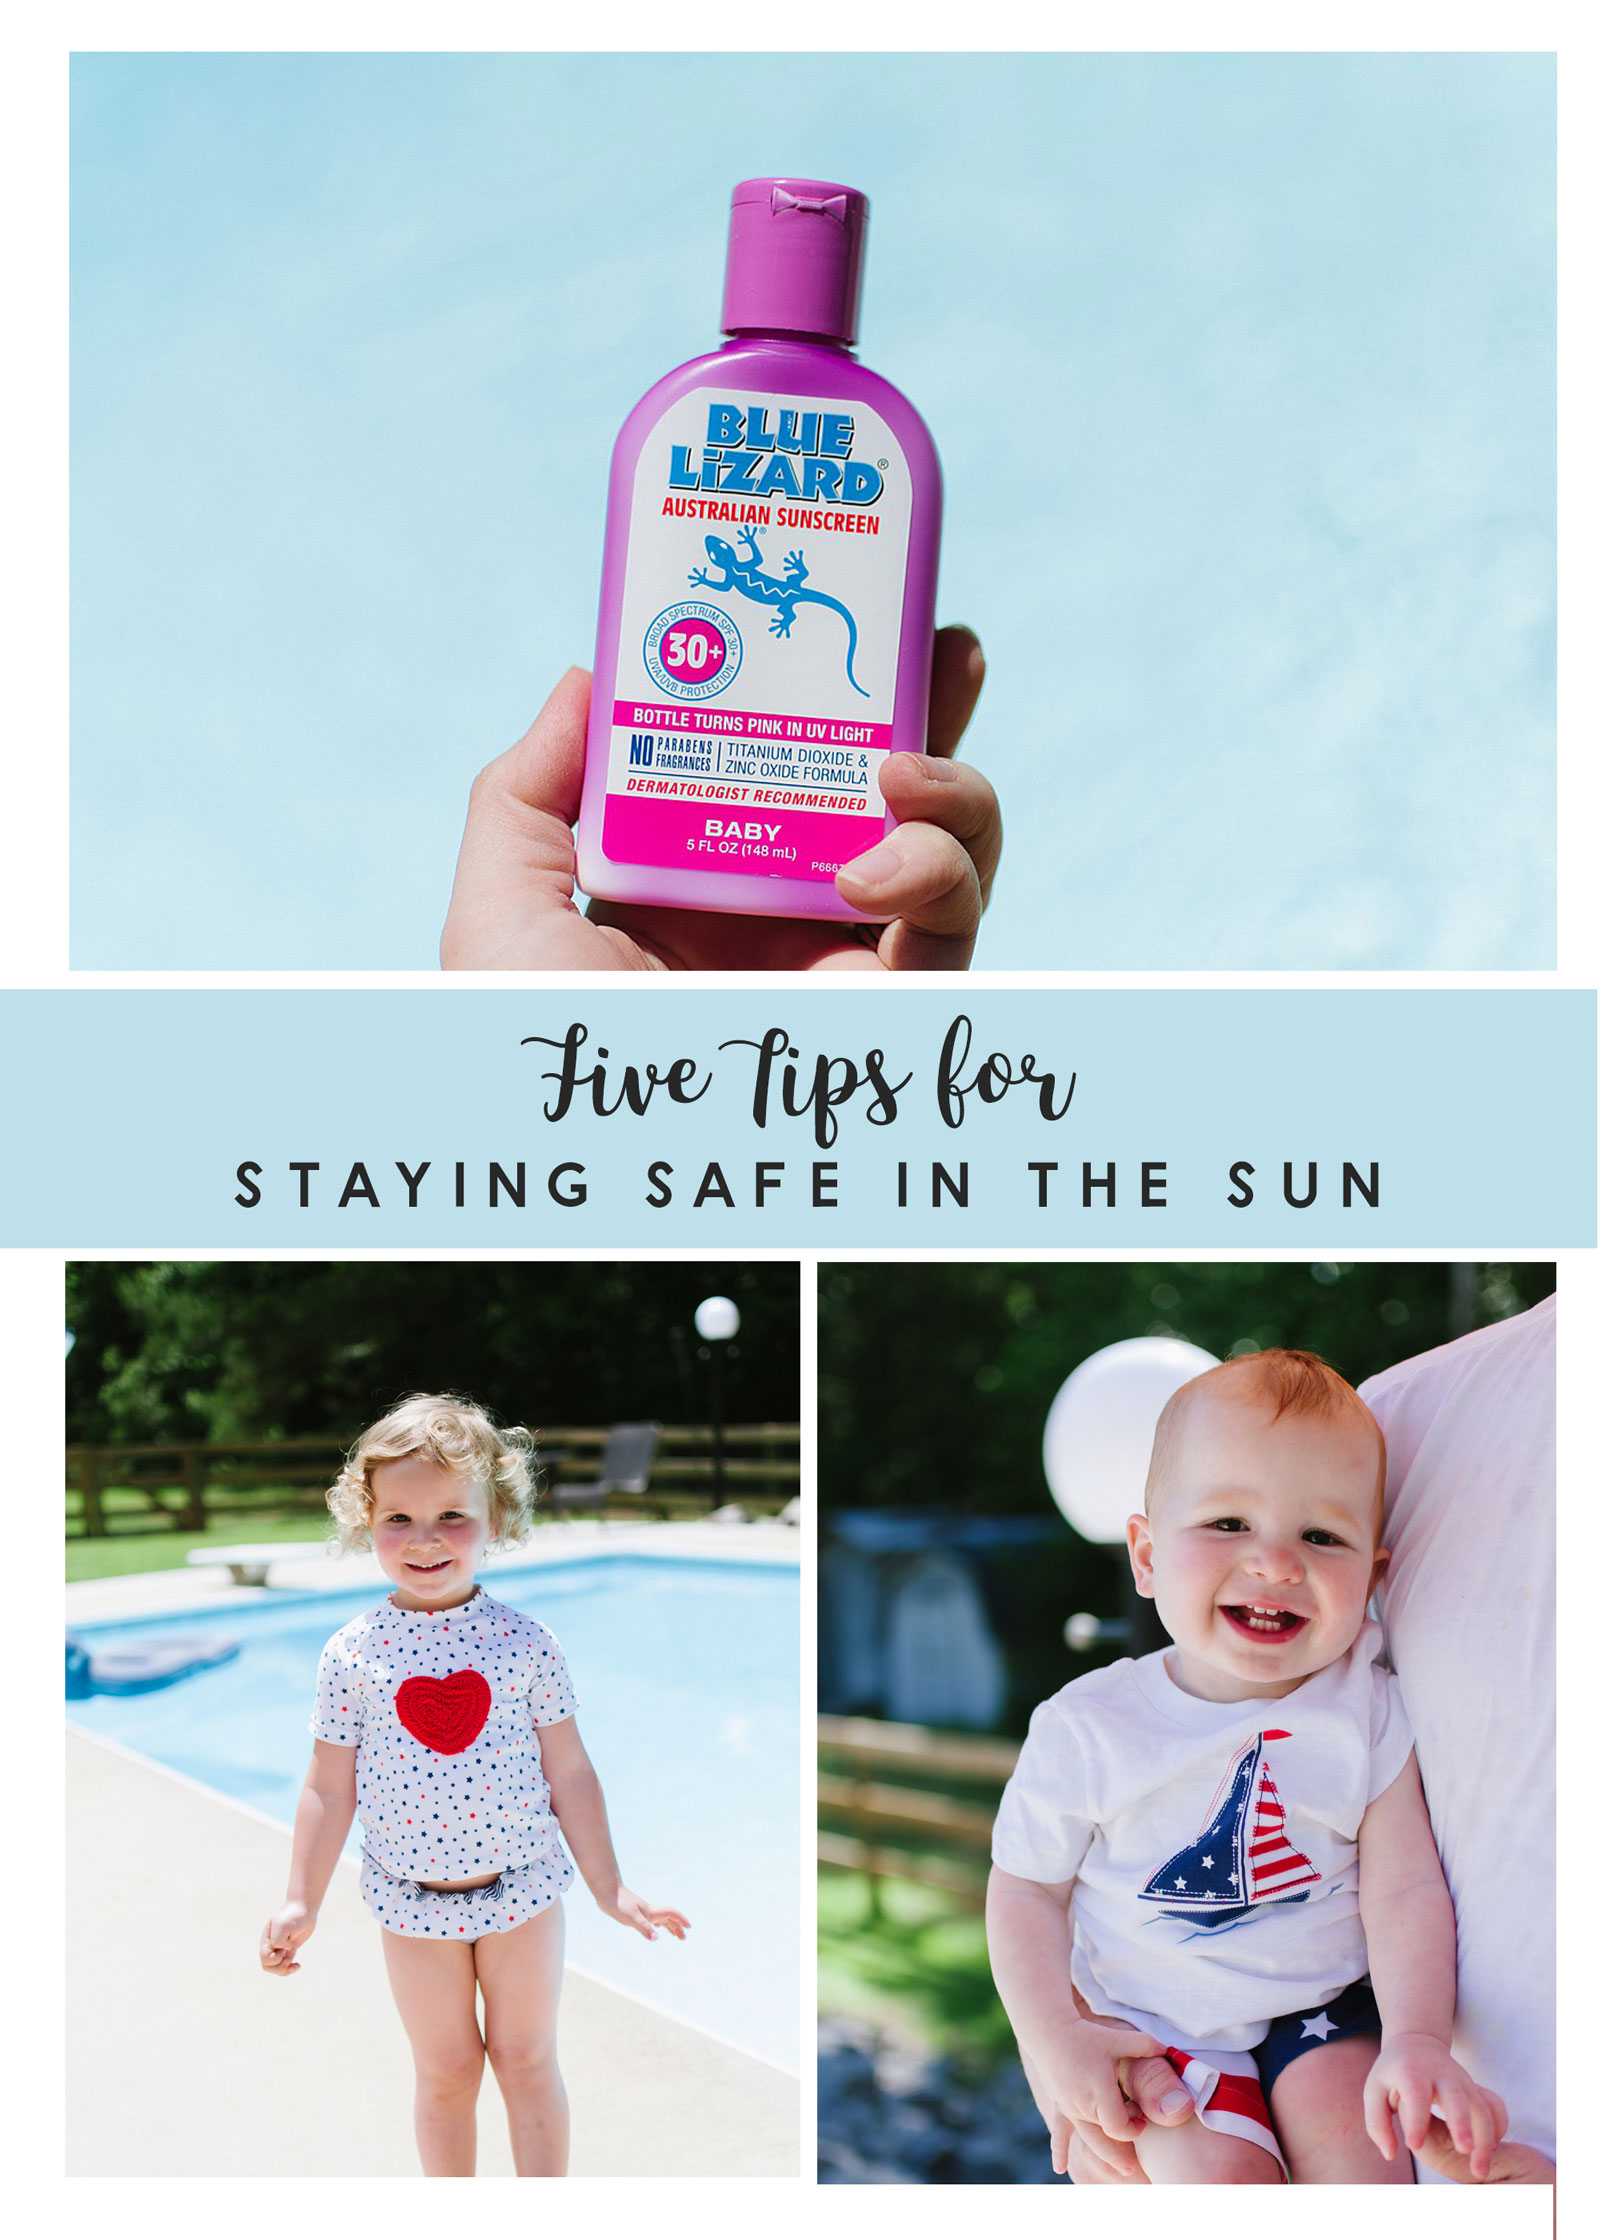 Sun Protection: 5 Tips for Being Safe in the Sun this Summer by lifestyle blogger Still Being Molly